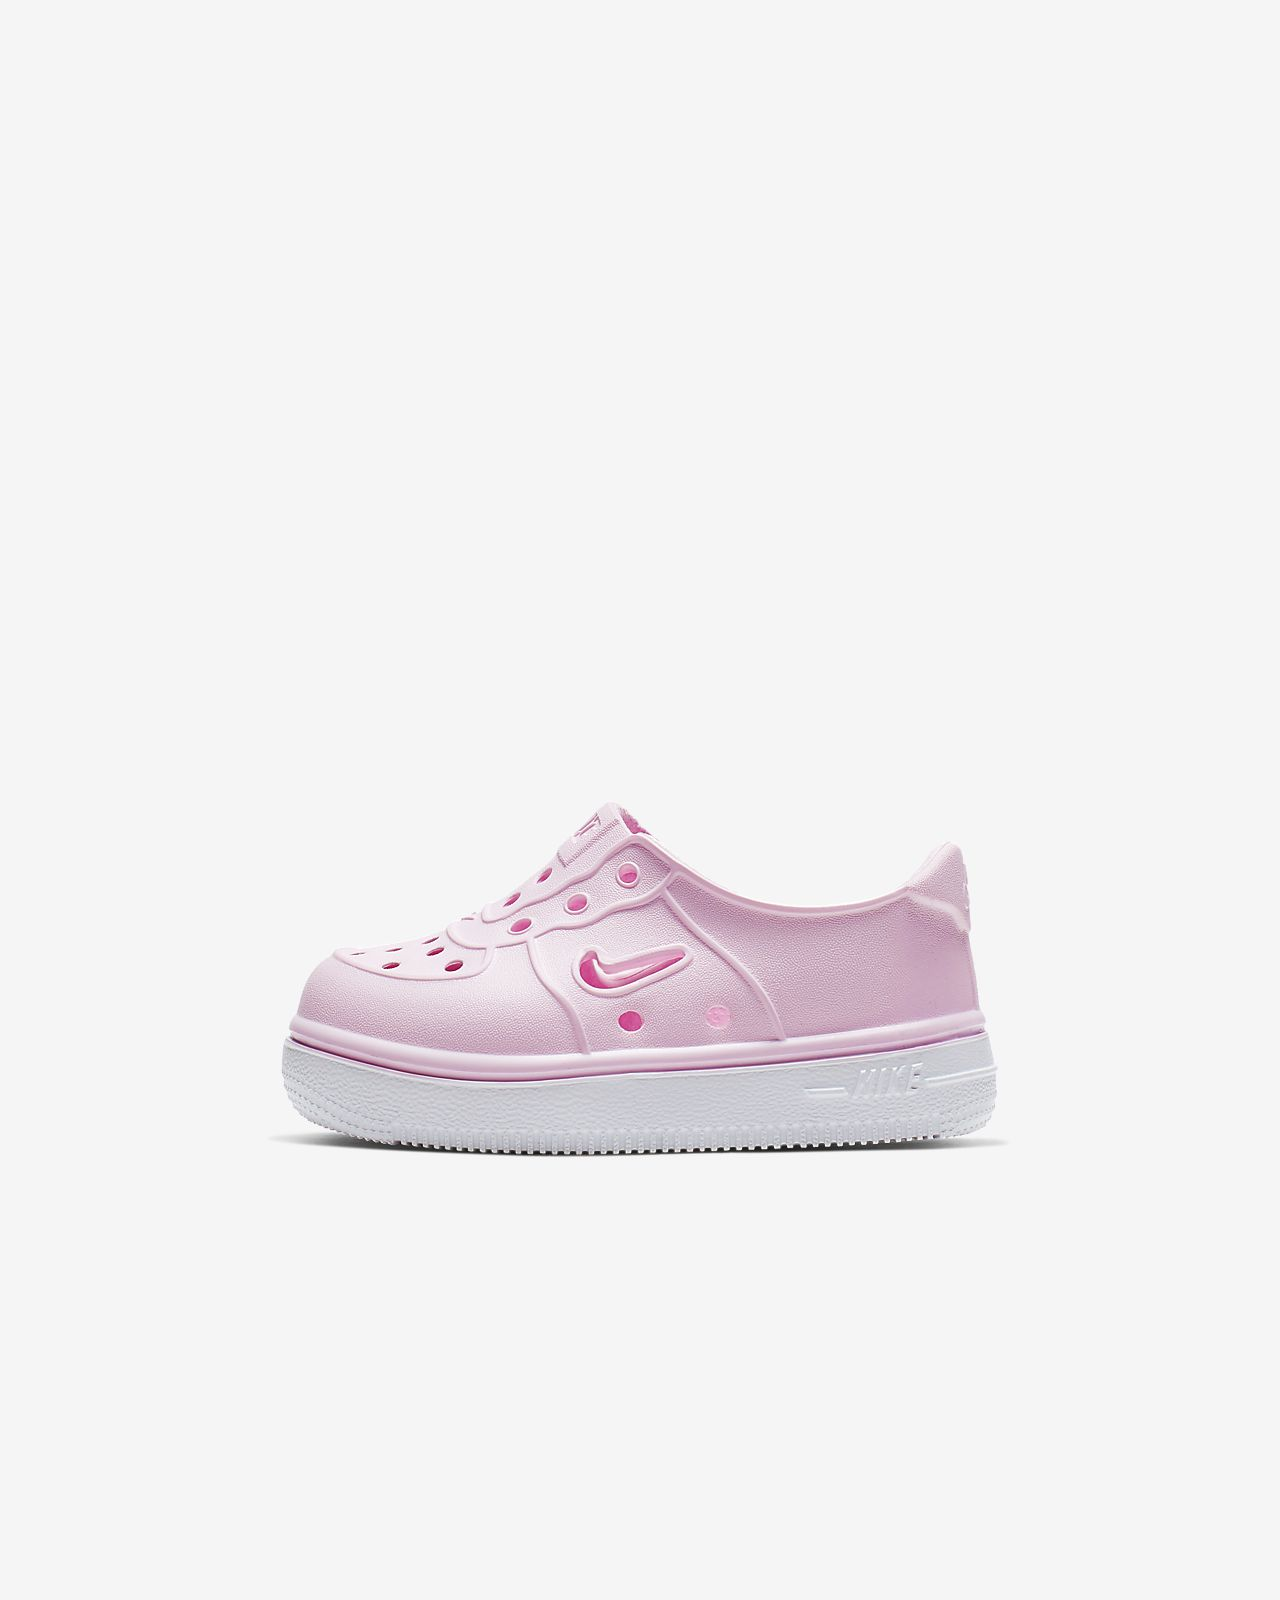 Nike Foam Force 1 Baby & Toddler Shoe